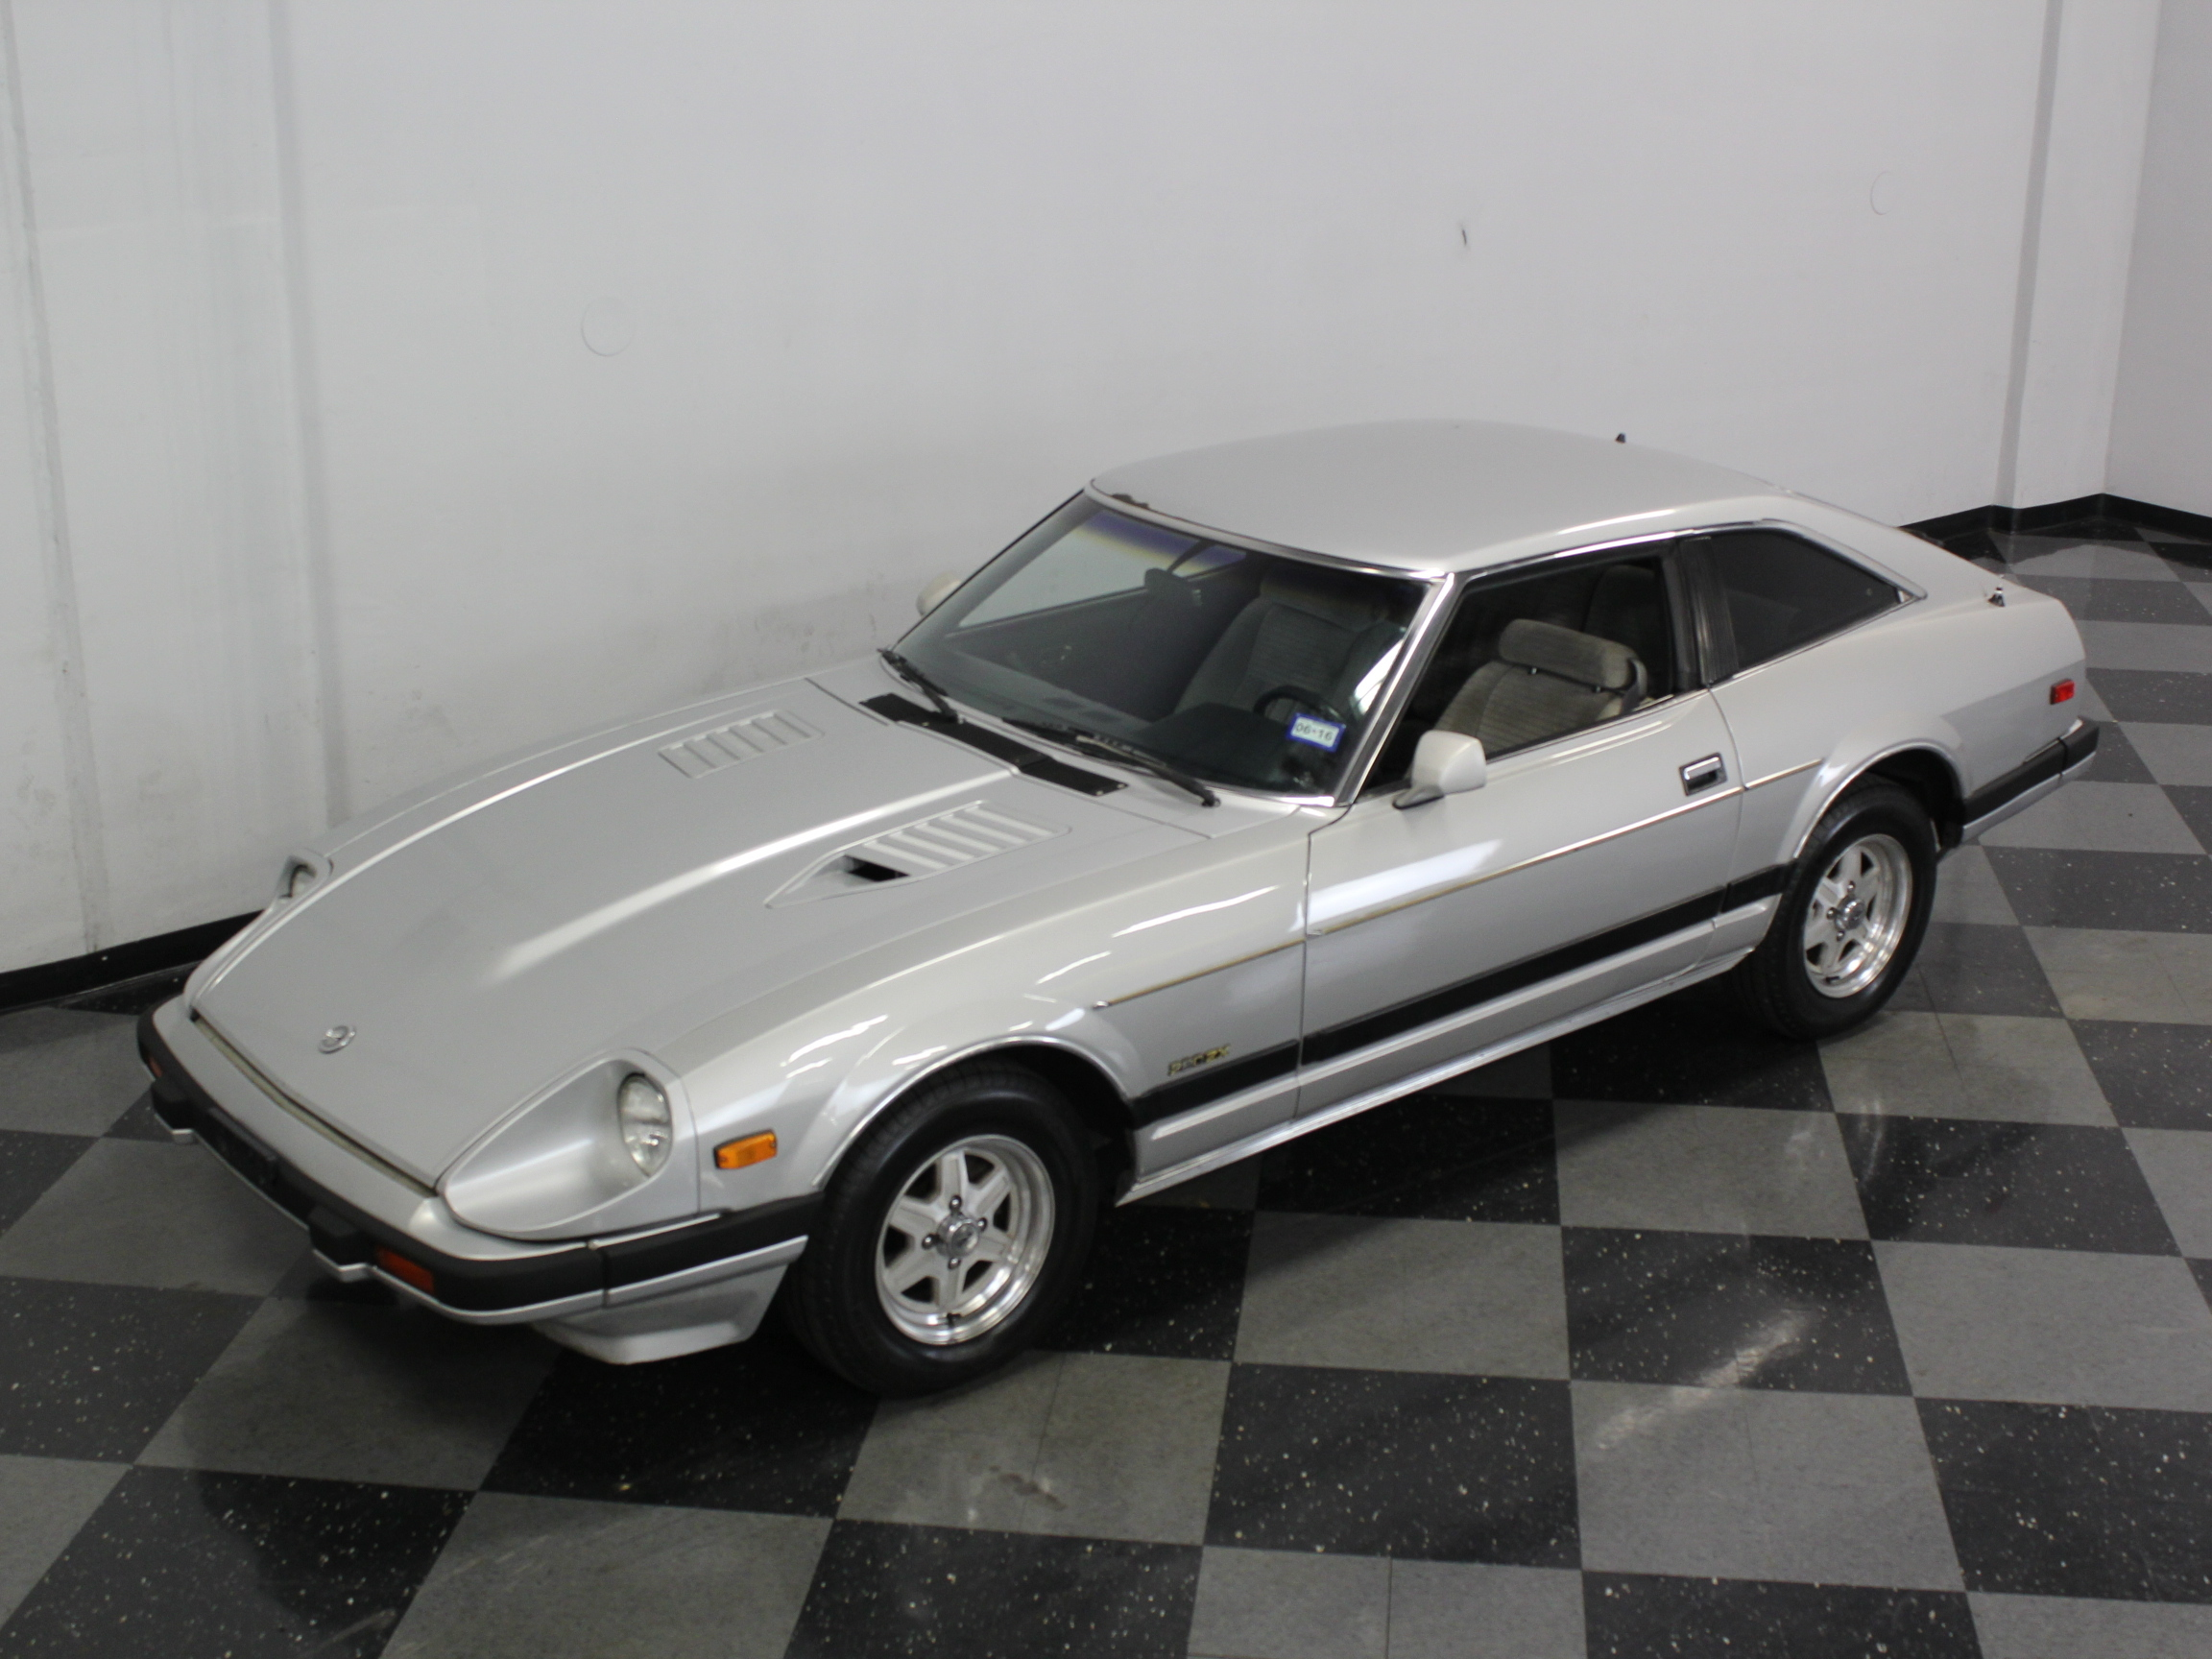 1982 Datsun Z-Series : MOSTLY ALL ORIGINAL Z, RECENT SERVICE WORK, WELL MAINTAINED